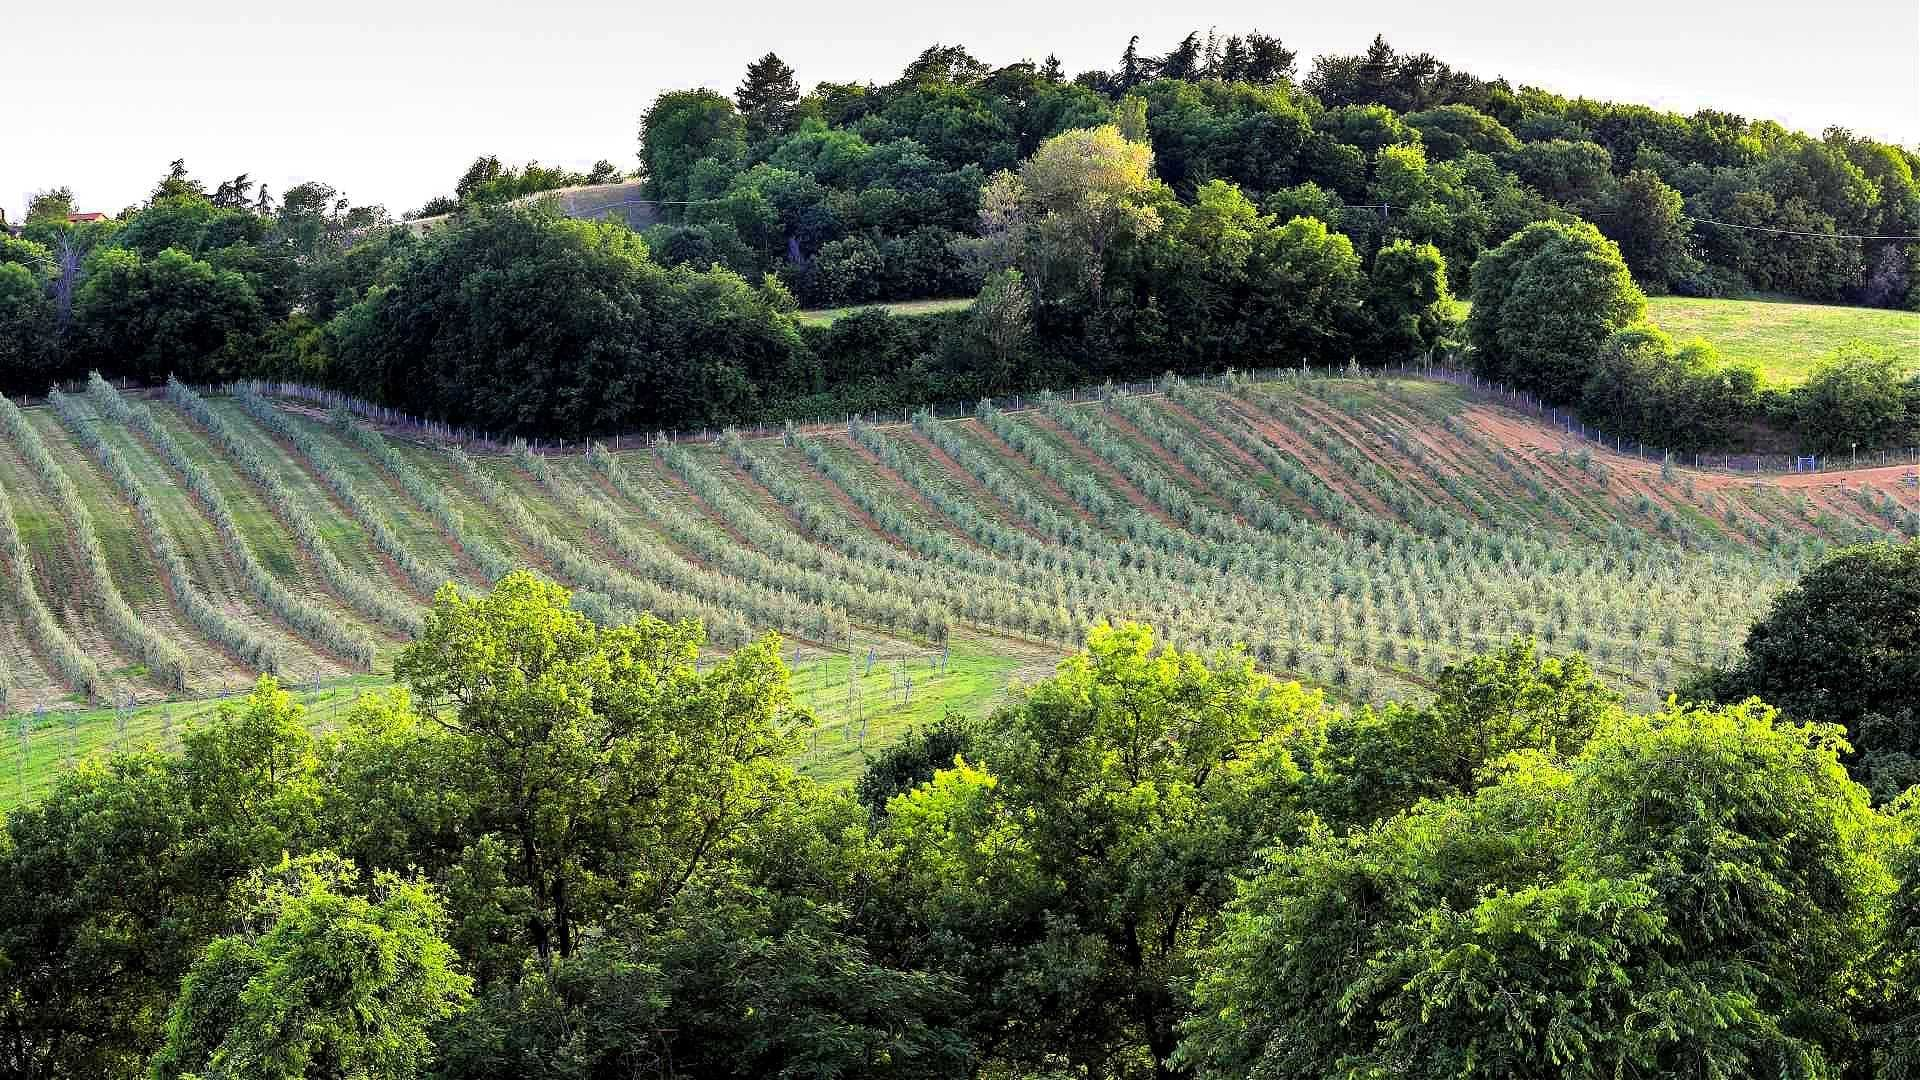 europe-competitions-production-the-best-olive-oils-northern-italian-producers-share-secrets-of-success-at-world-olive-oil-competition-olive-oil-times